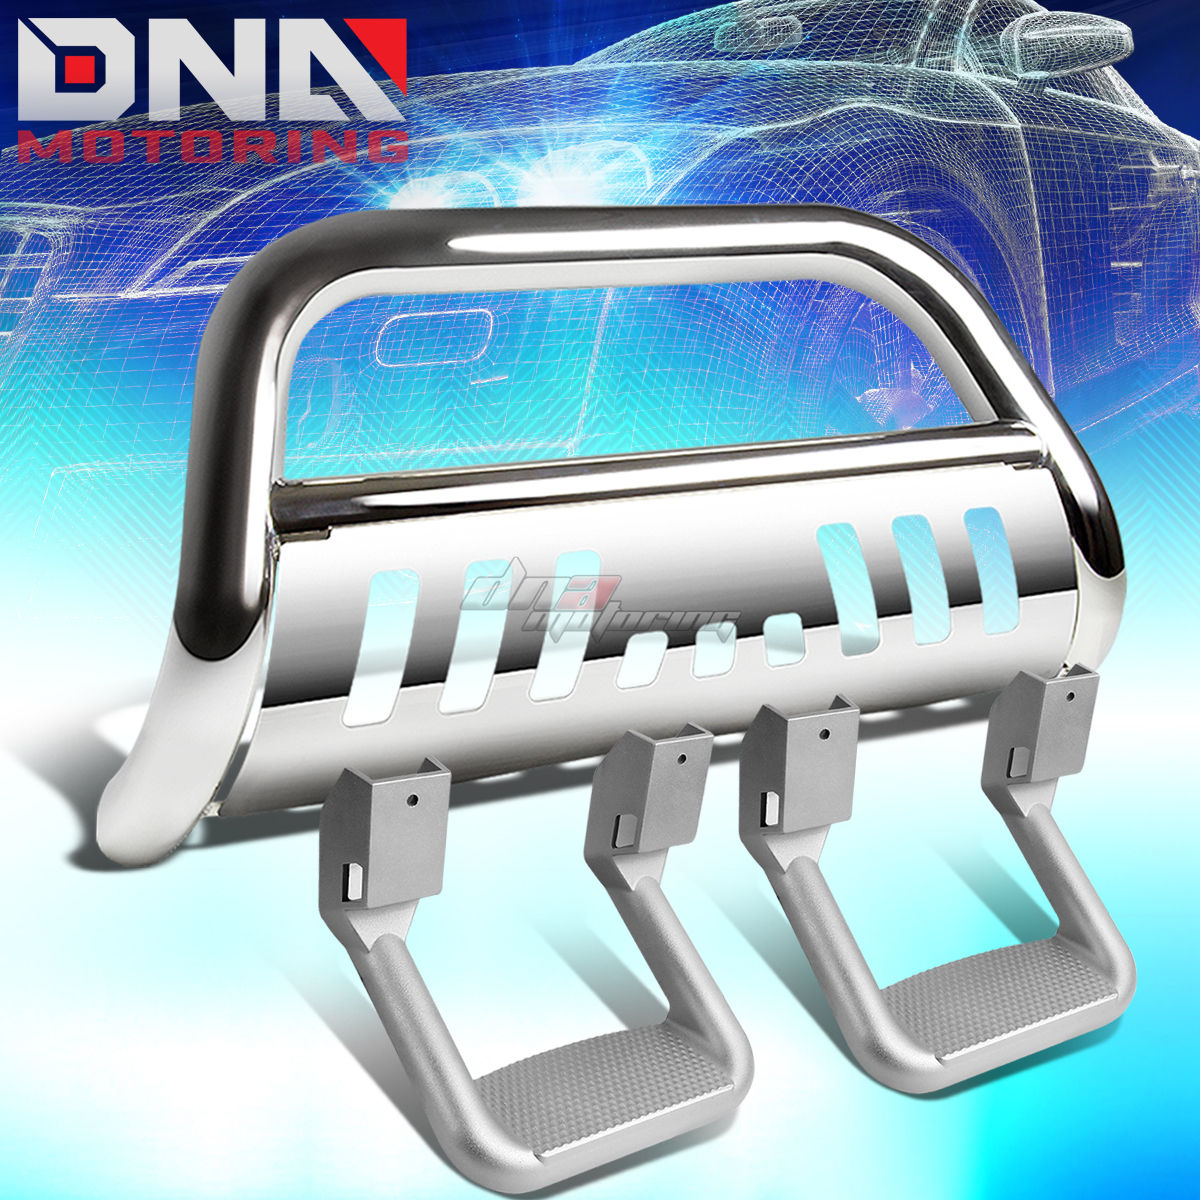 グリル CHROME BULL BARバンパーガード+サイドアシストステップフィット88-00 CHEVY C / K C10 / SUBURBAN CHROME BULL BAR BUMPER GUARD+SIDE ASSIST STEP FIT 88-00 CHEVY C/K C10/SUBURBAN